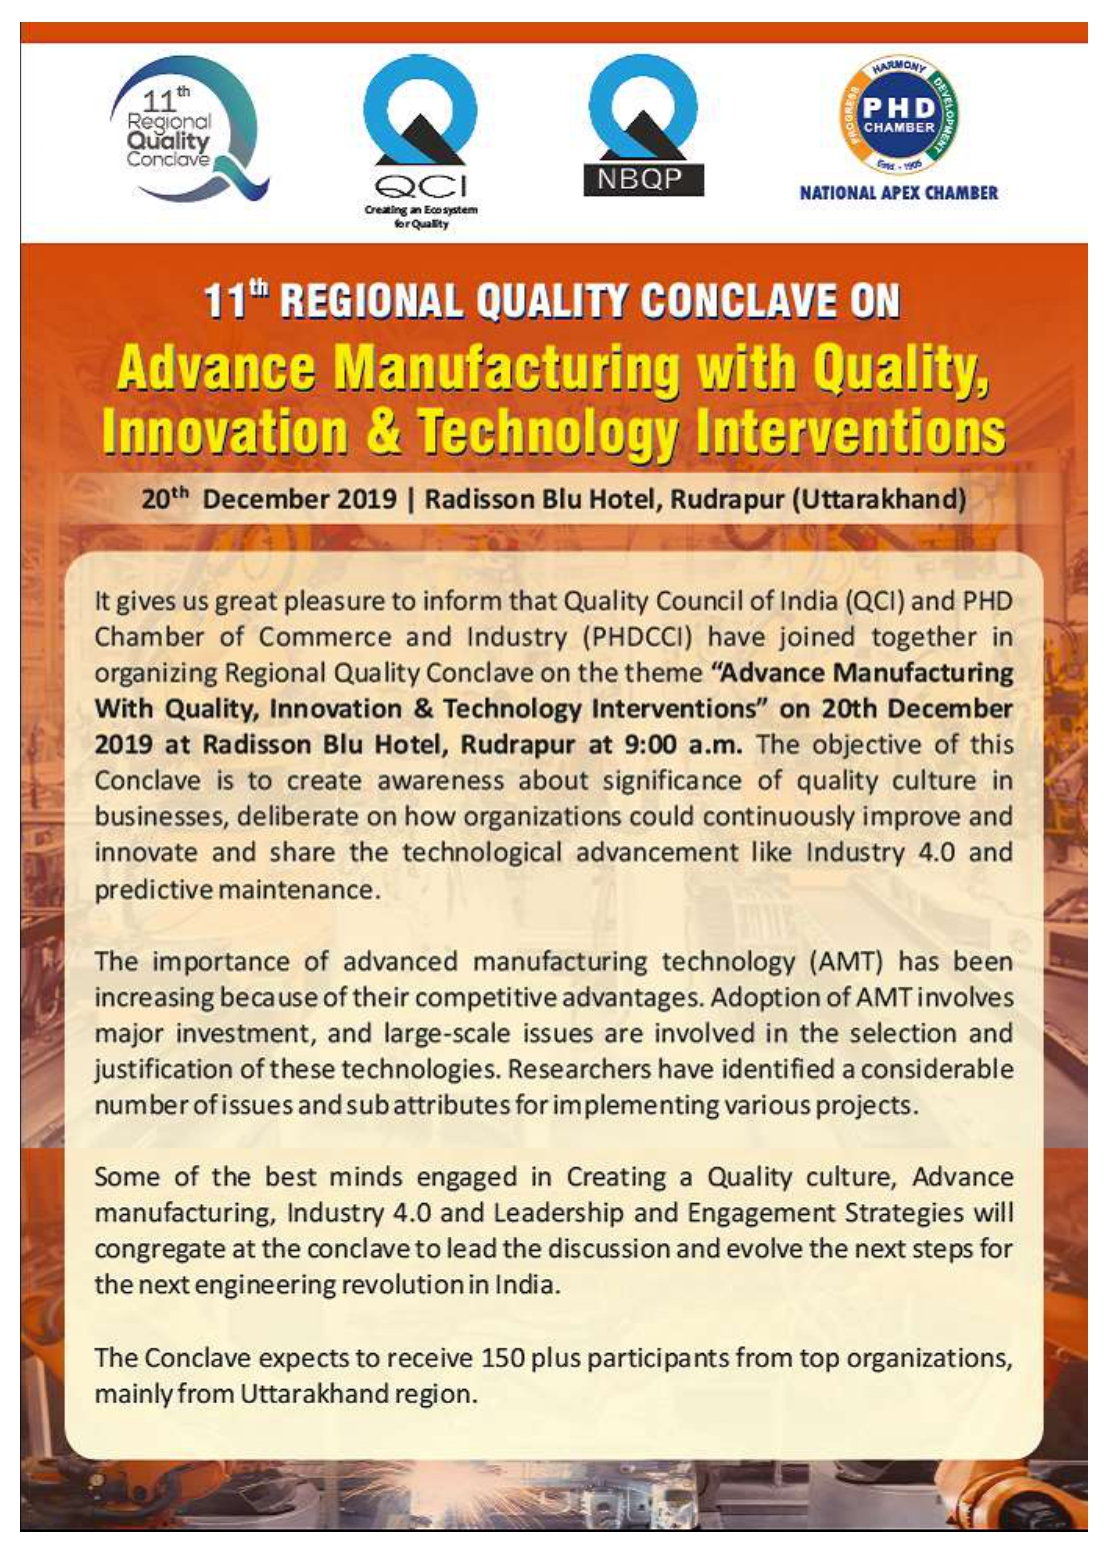 11th Regional Quality Conclave on Advance Manufacturing with Quality, Innovation & Technology Interventions